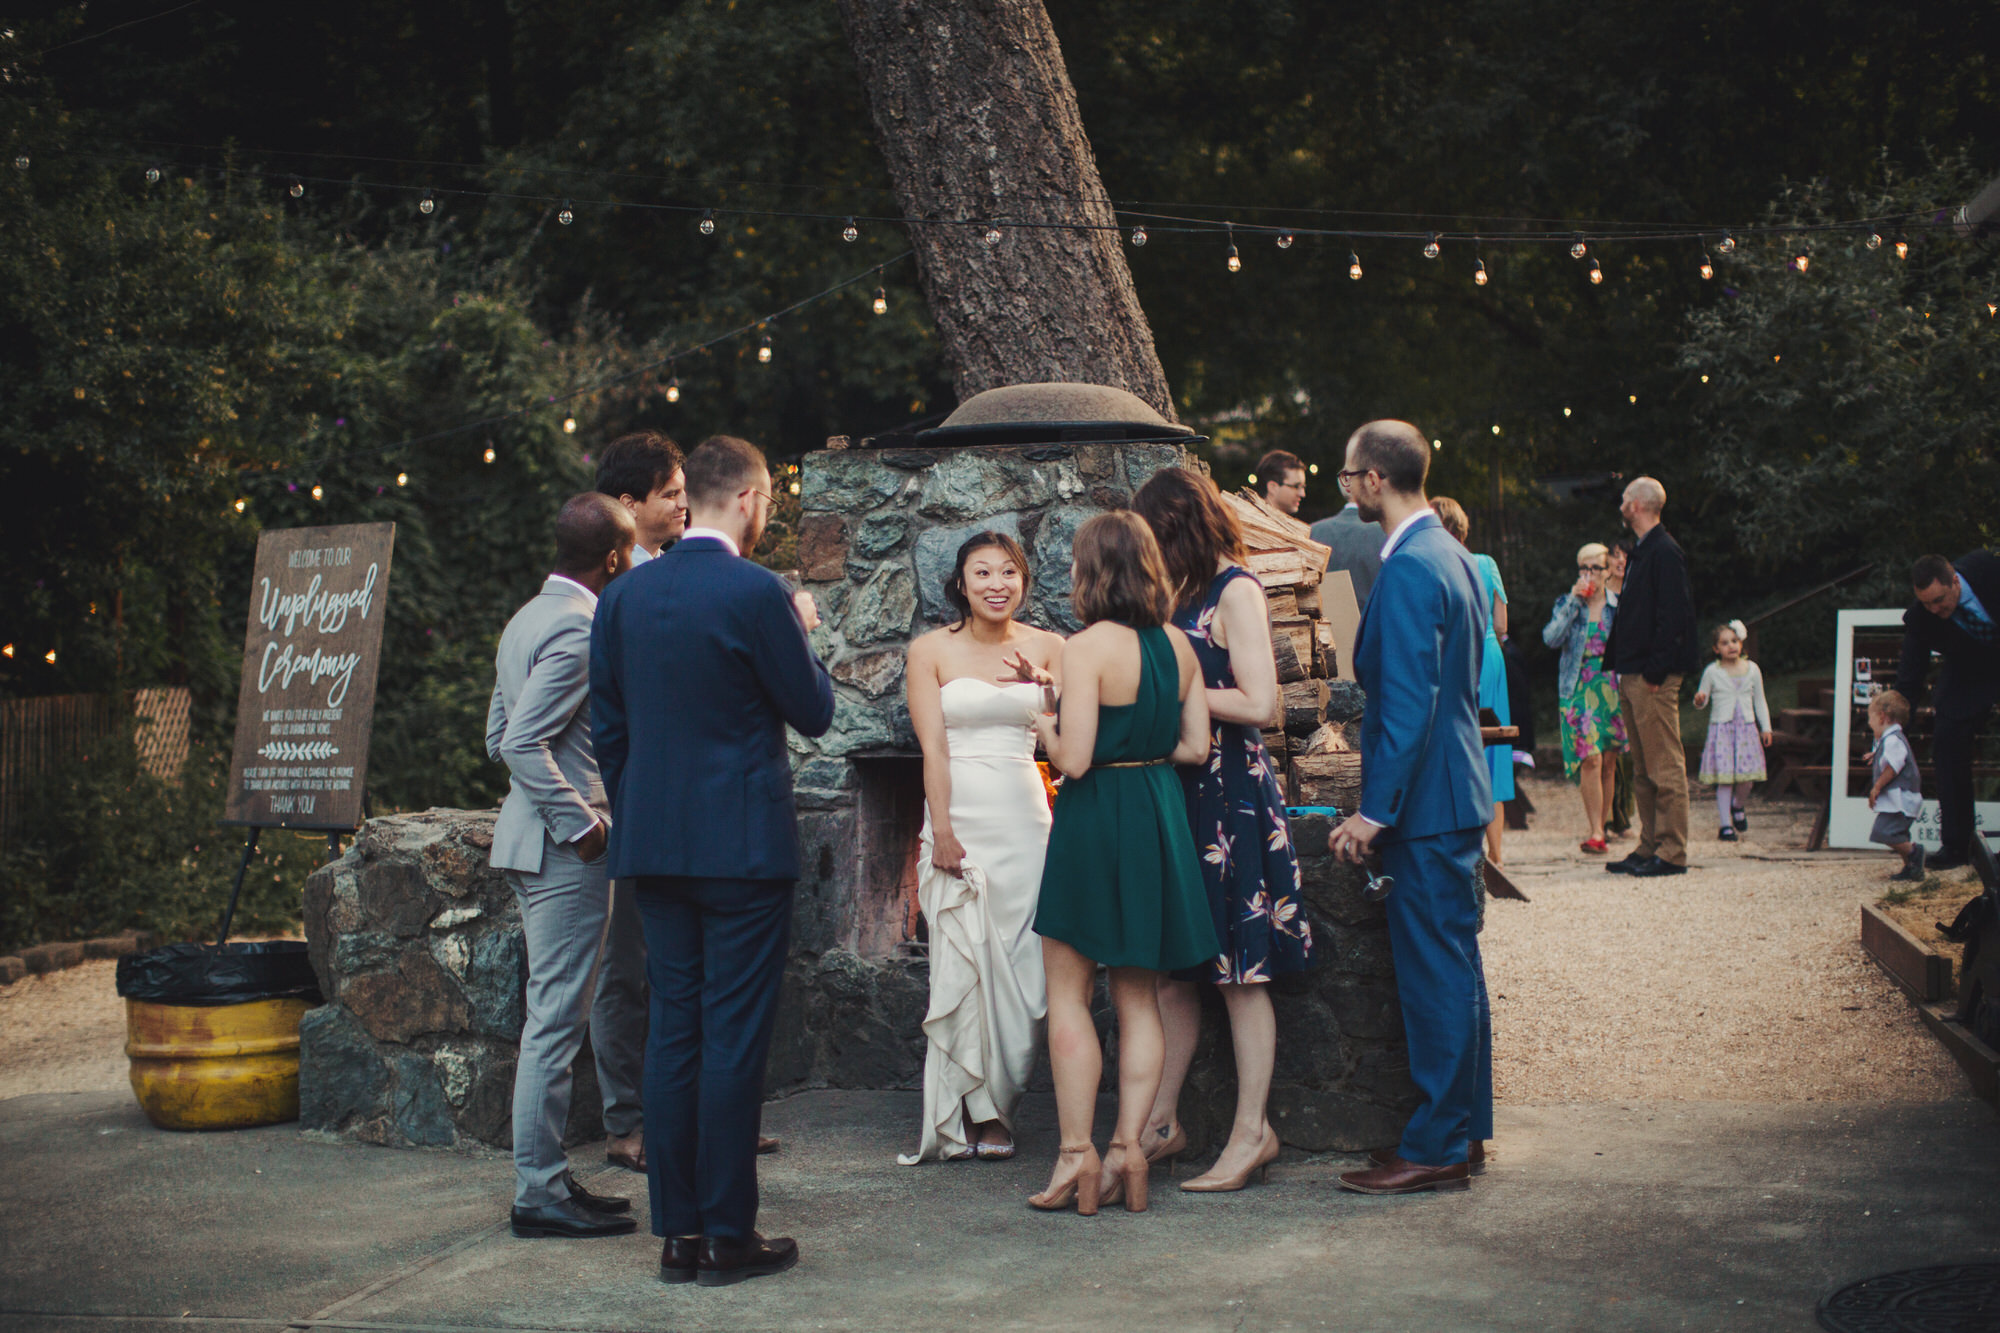 The Inn on the Russian River wedding